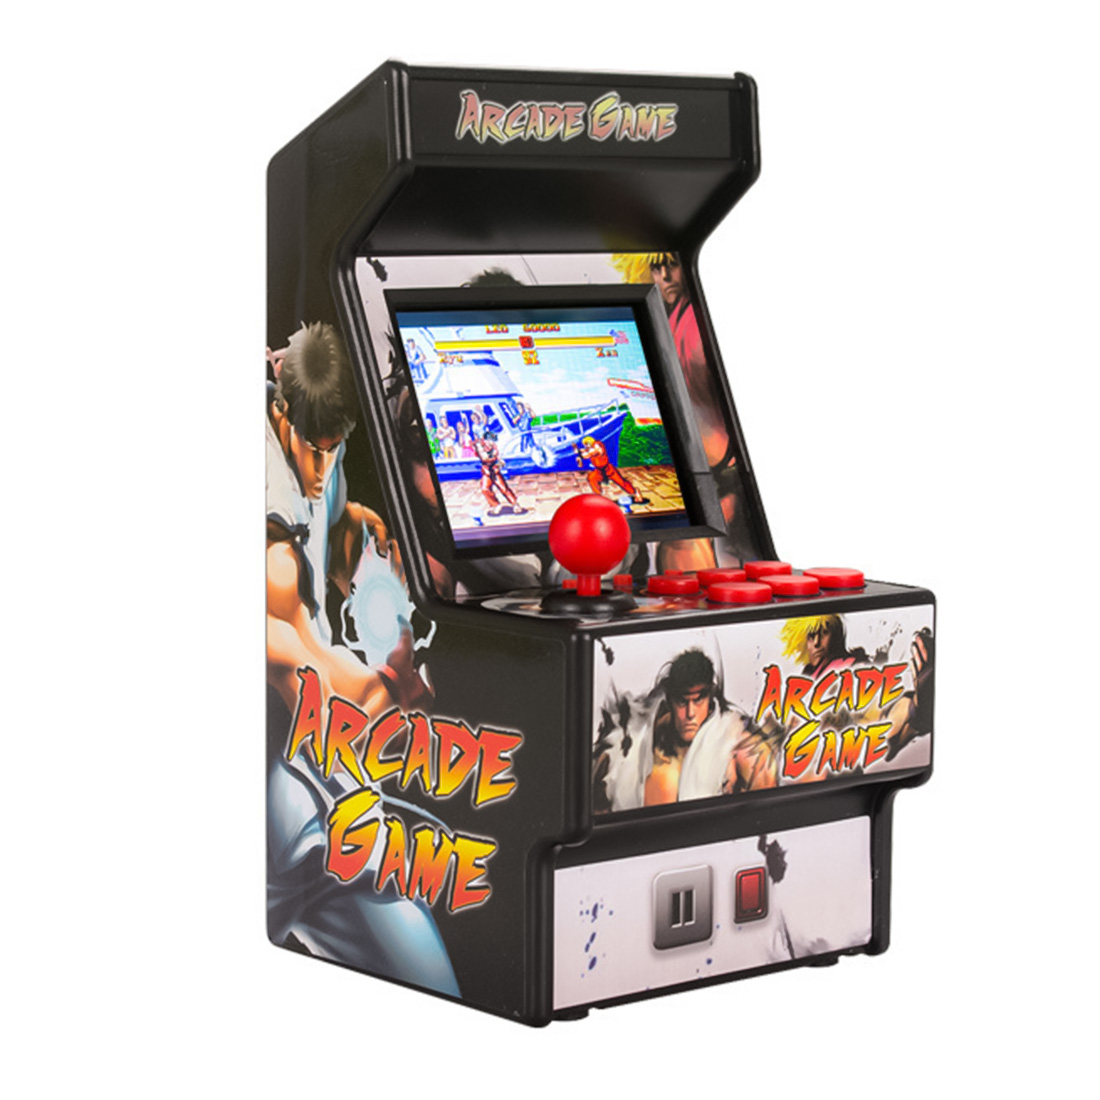 TFT LCD Screen Console Mini Arcade 16 Bit Game Player